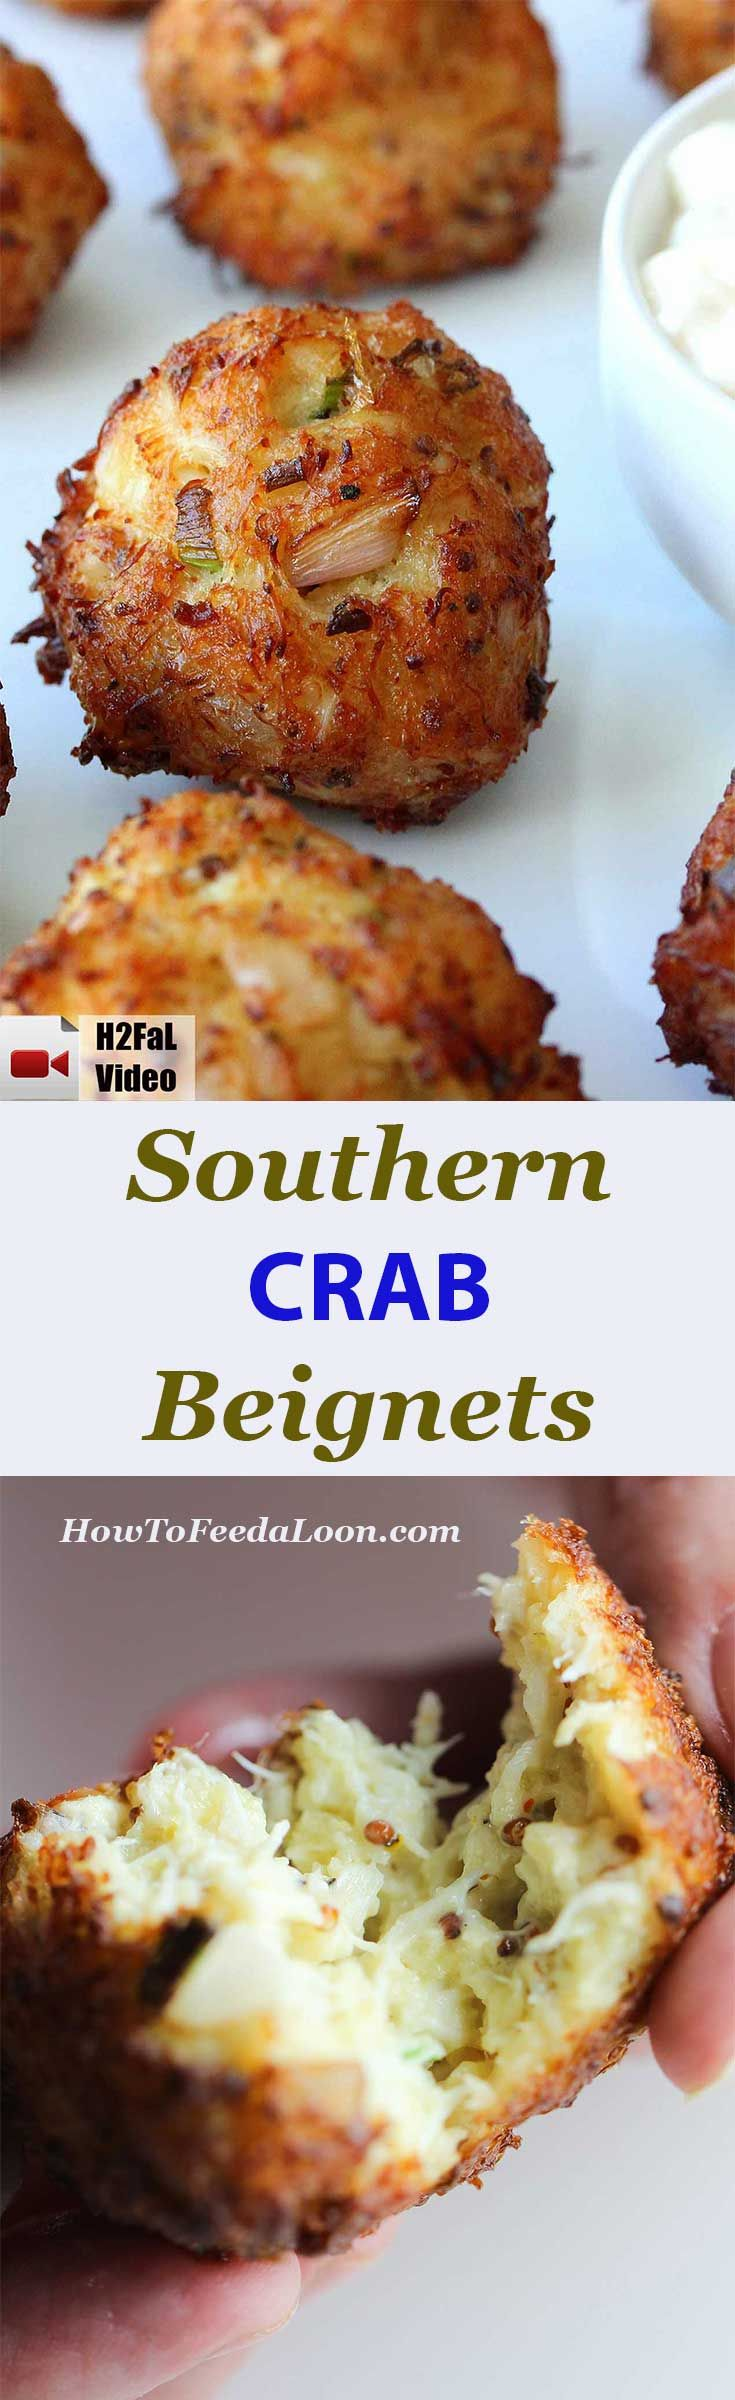 Southern Crab Beignets